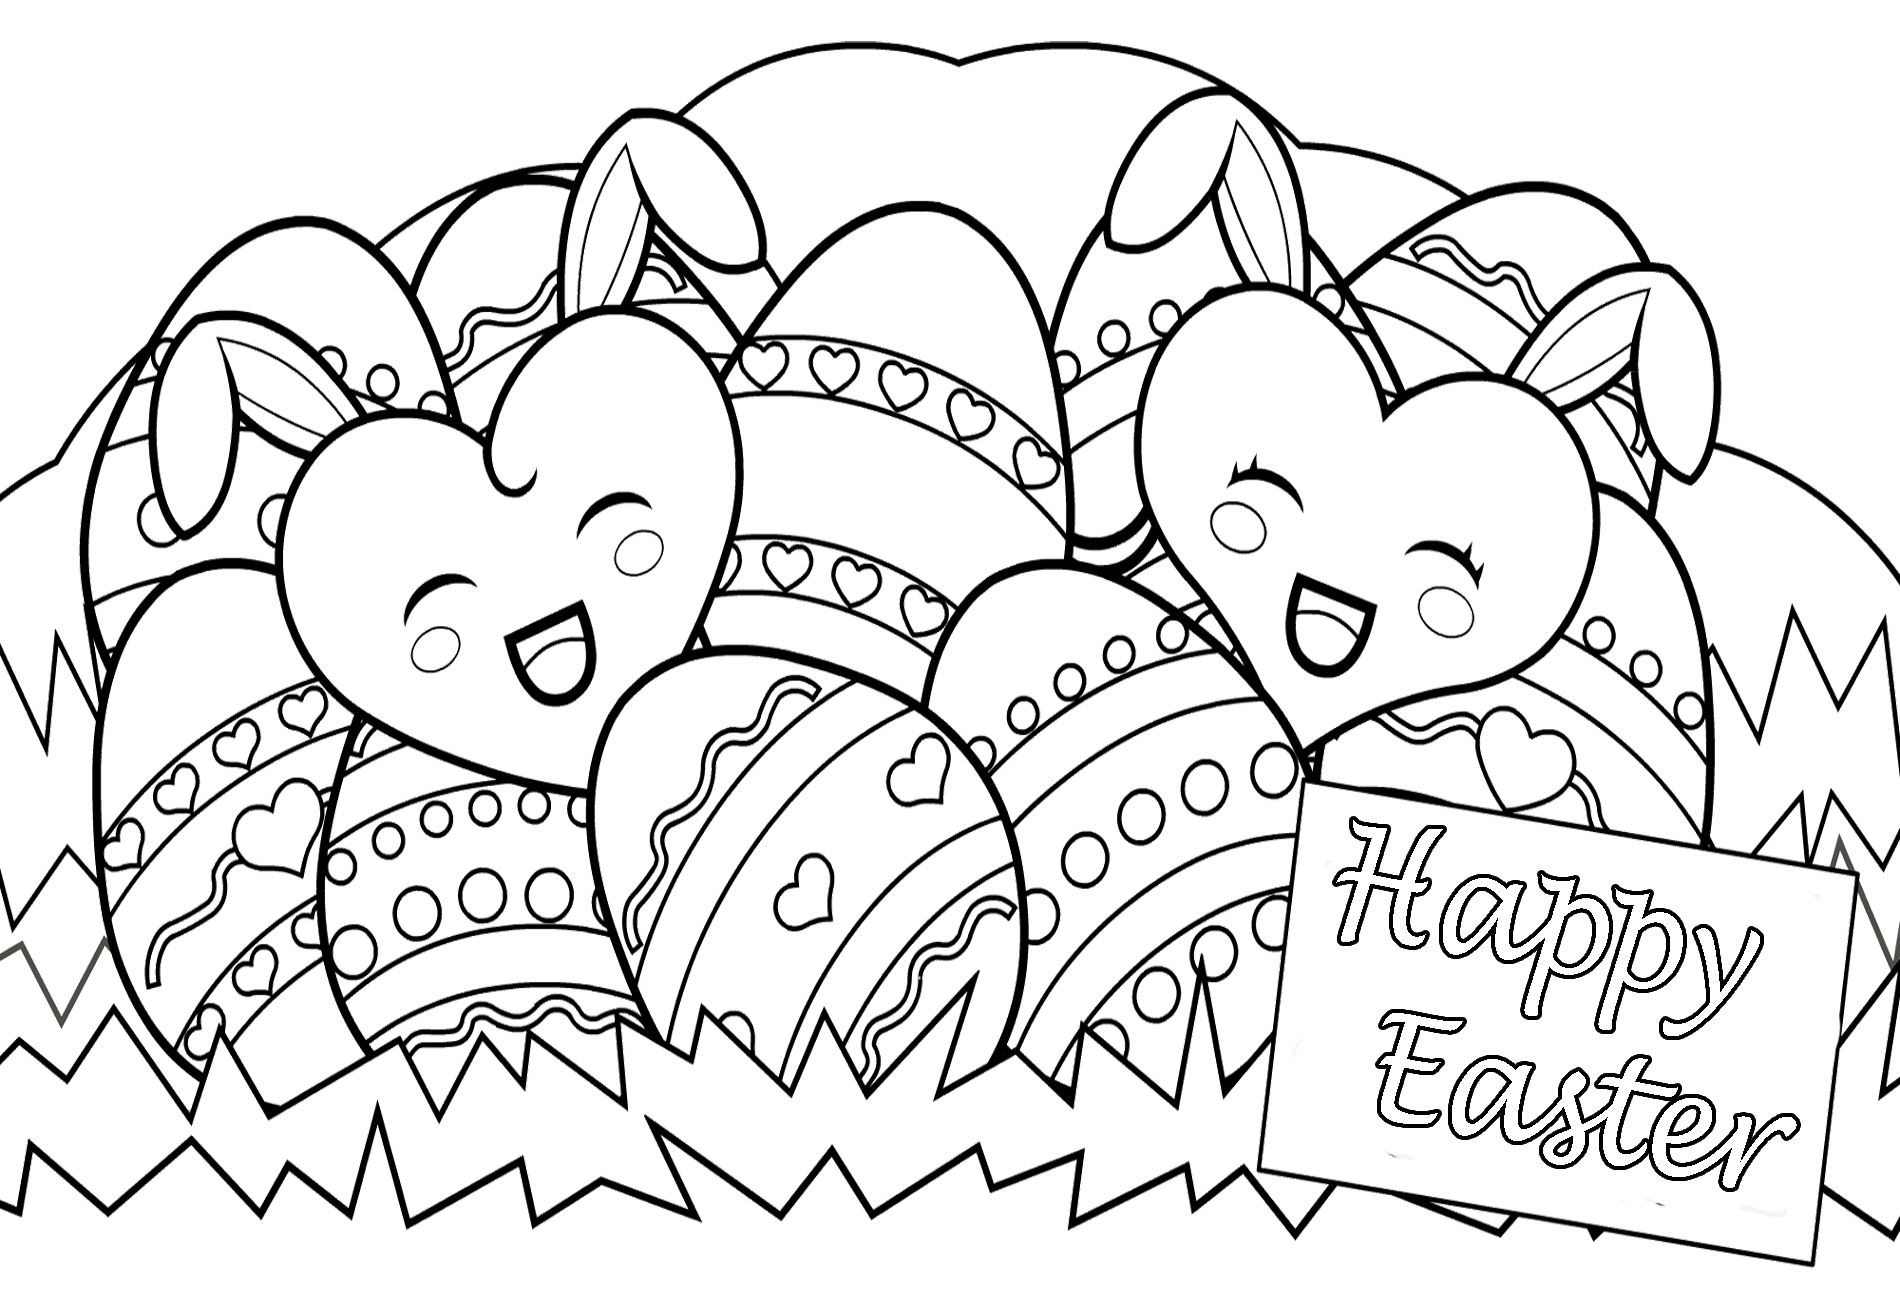 New Free Printable Easter Coloring Pages Printable Coloring Page Gallery Of Easter Egg Designs Coloring Pages to Print